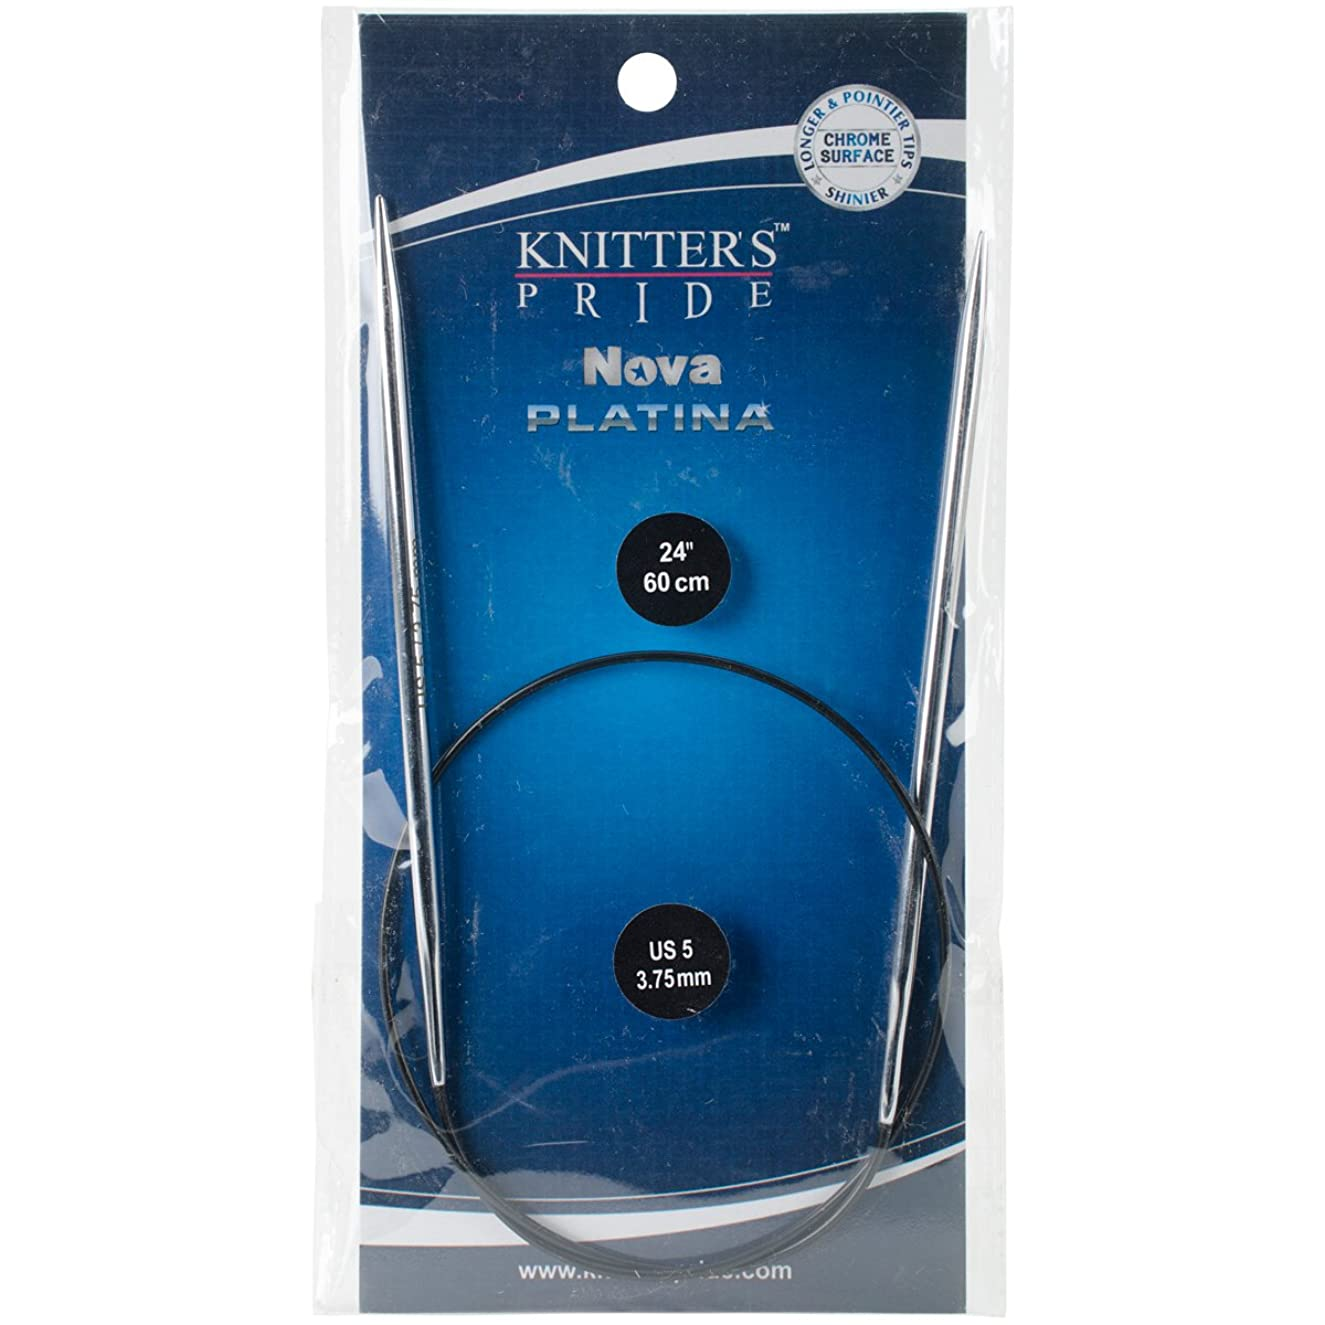 Knitter's Pride 5/3.75mm Nova Platina Double Pointed Needles, 24